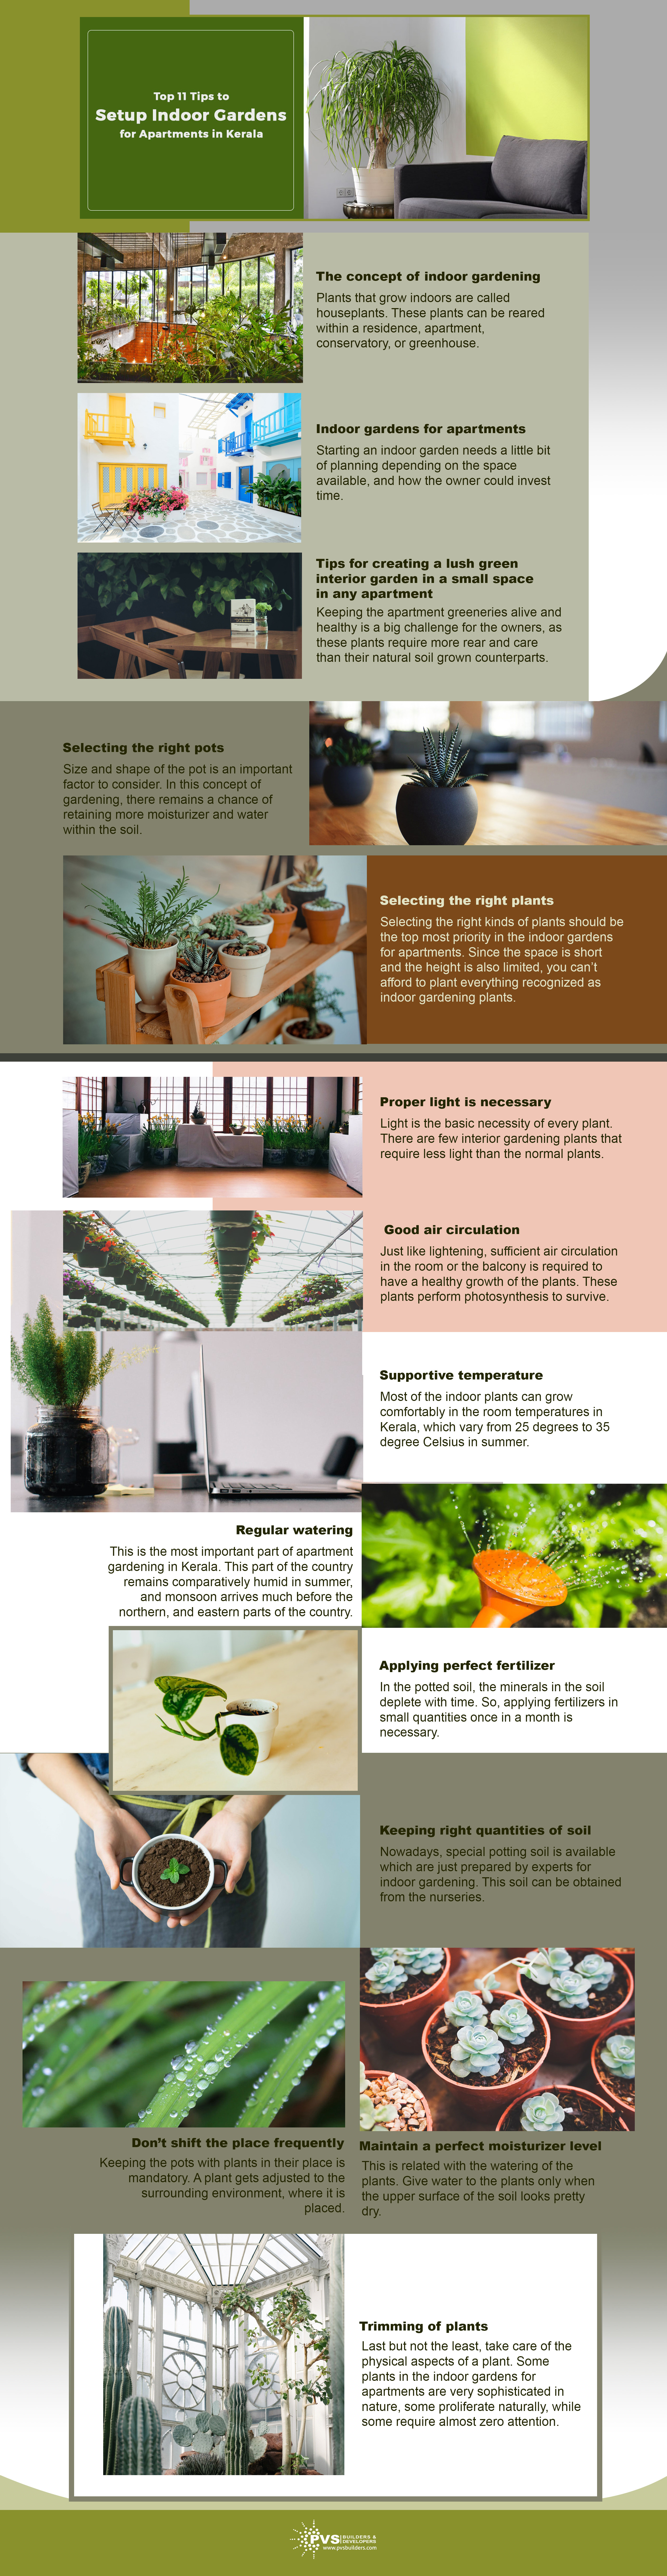 Top Tips To Setup Indoor Gardens For Apartments In Kerala